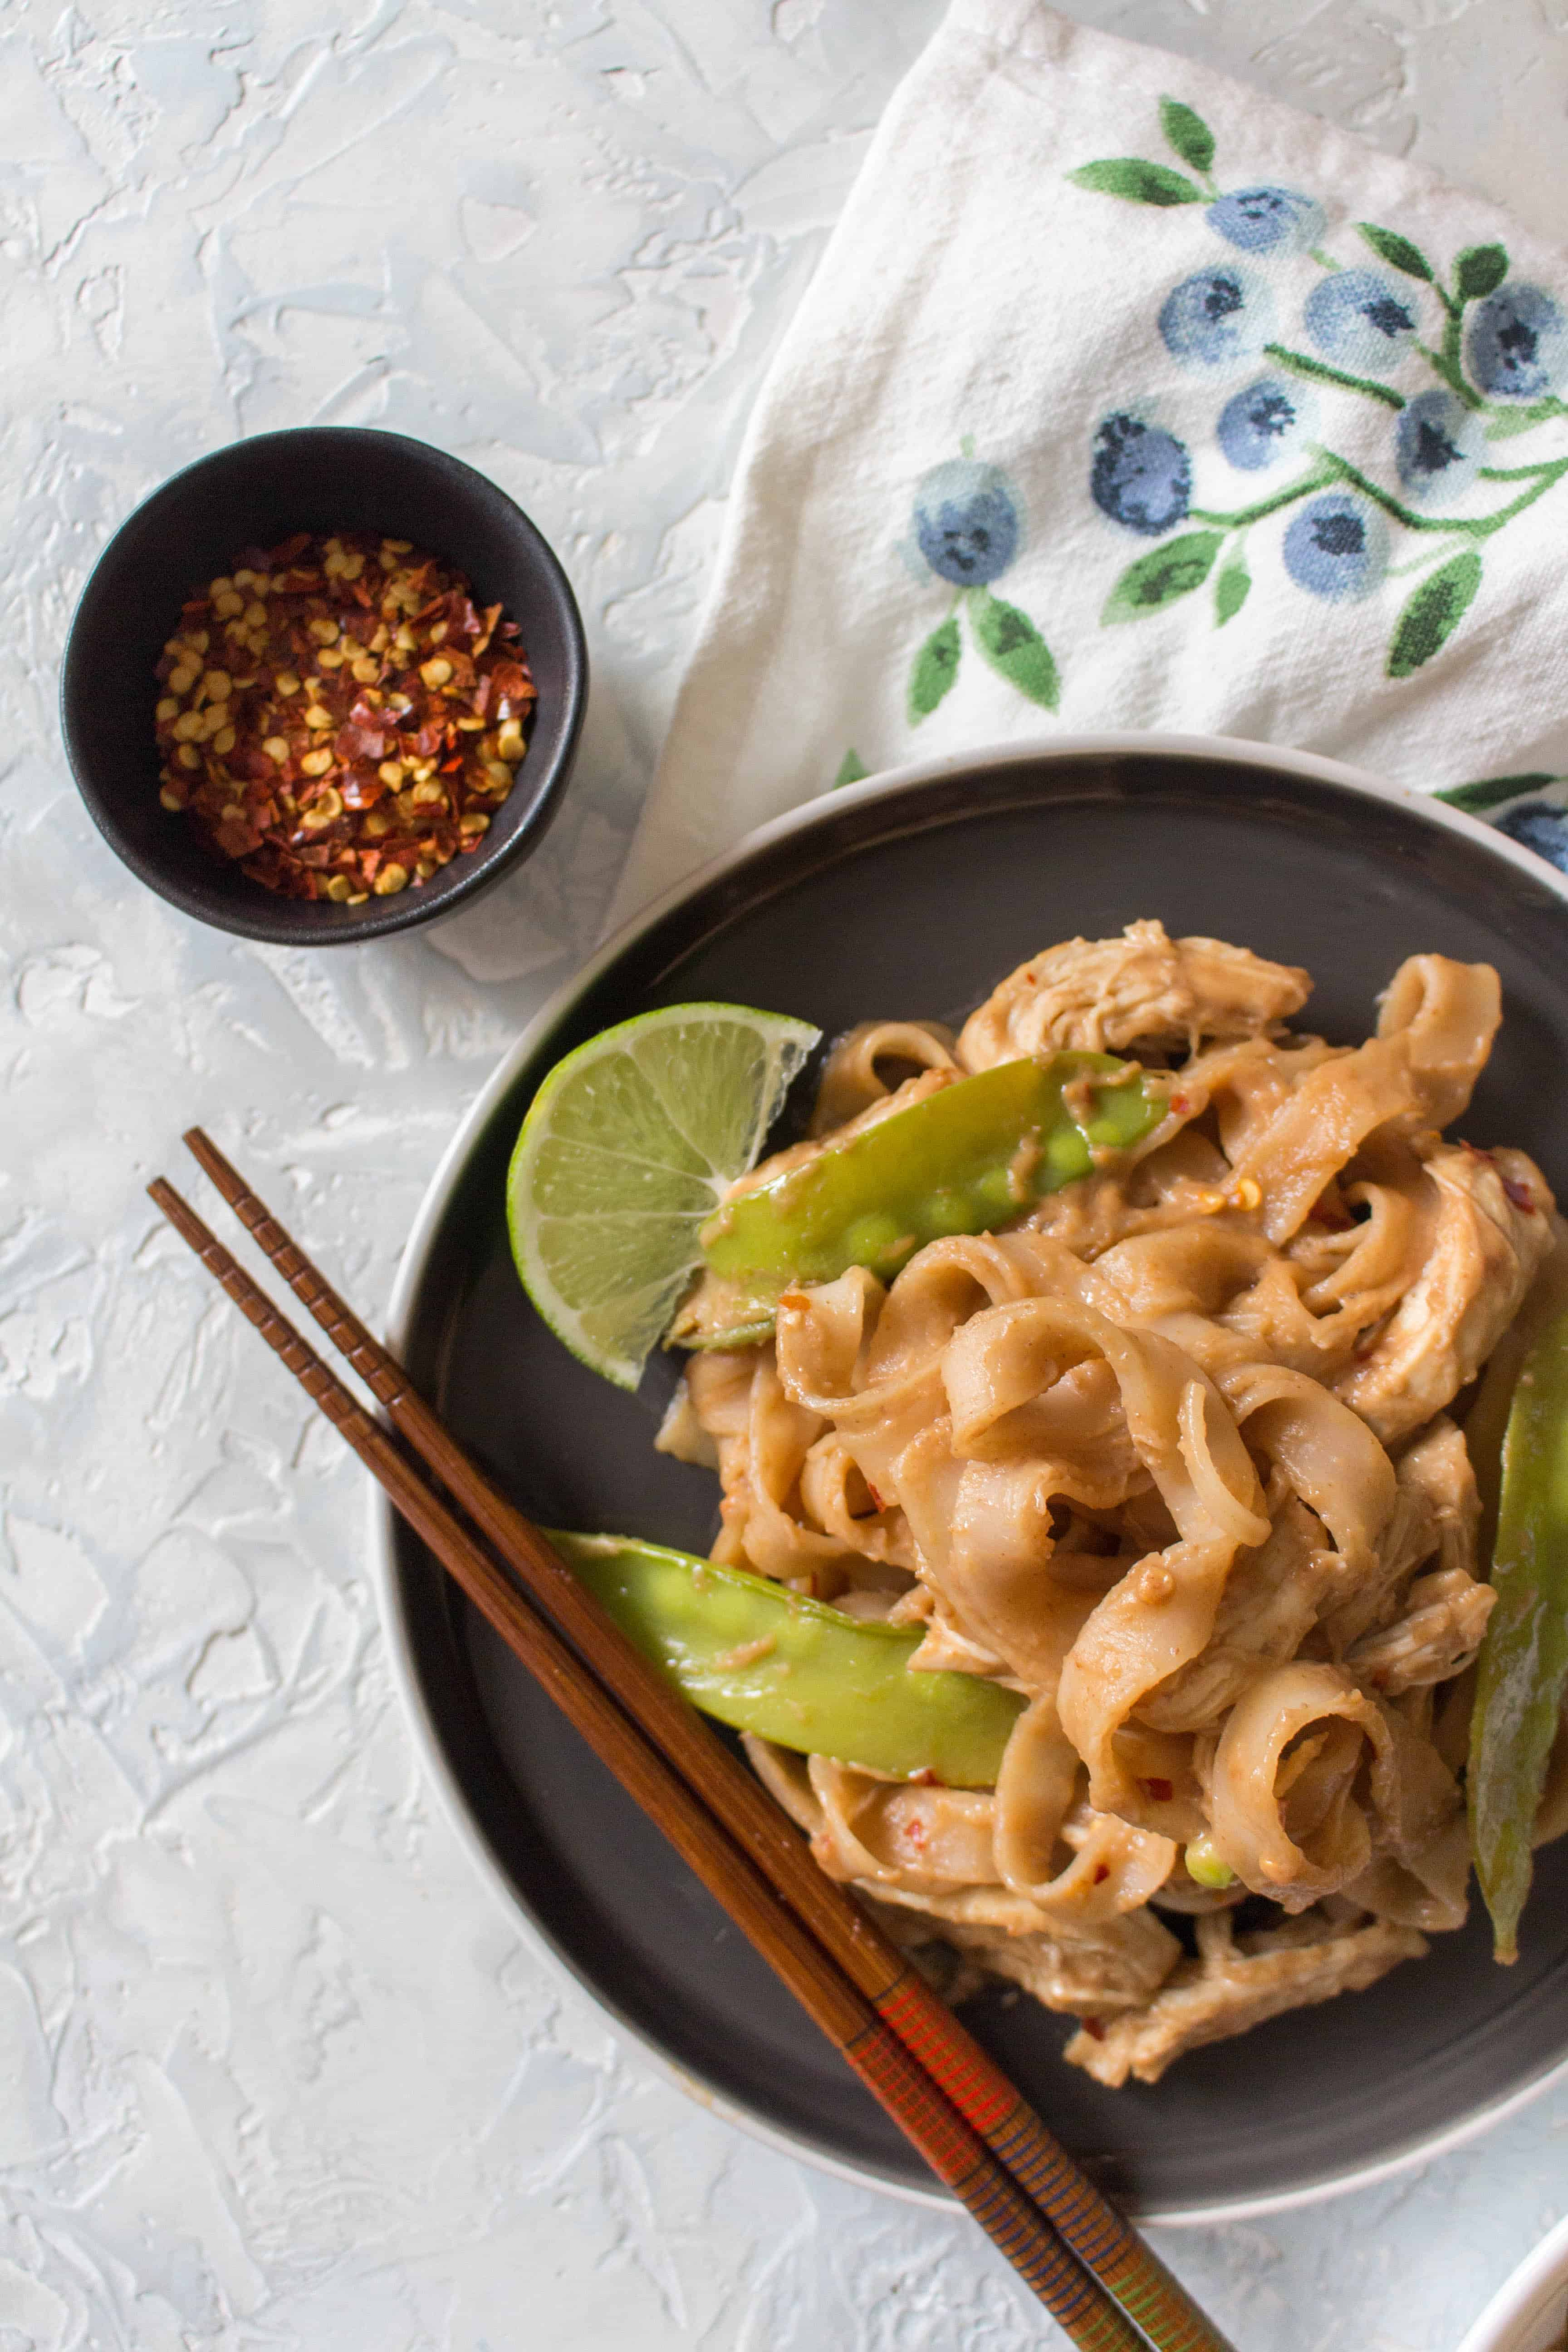 This Healthy Instant Pot Thai Peanut Chicken and Noodles Recipe is the perfect weeknight dinner! This Thai Peanut Chicken and Noodle recipe is so quick, easy, and versatile you're going to want to make all the time! Non-Instant Pot instructions are down below if you don't have an Instant Pot!